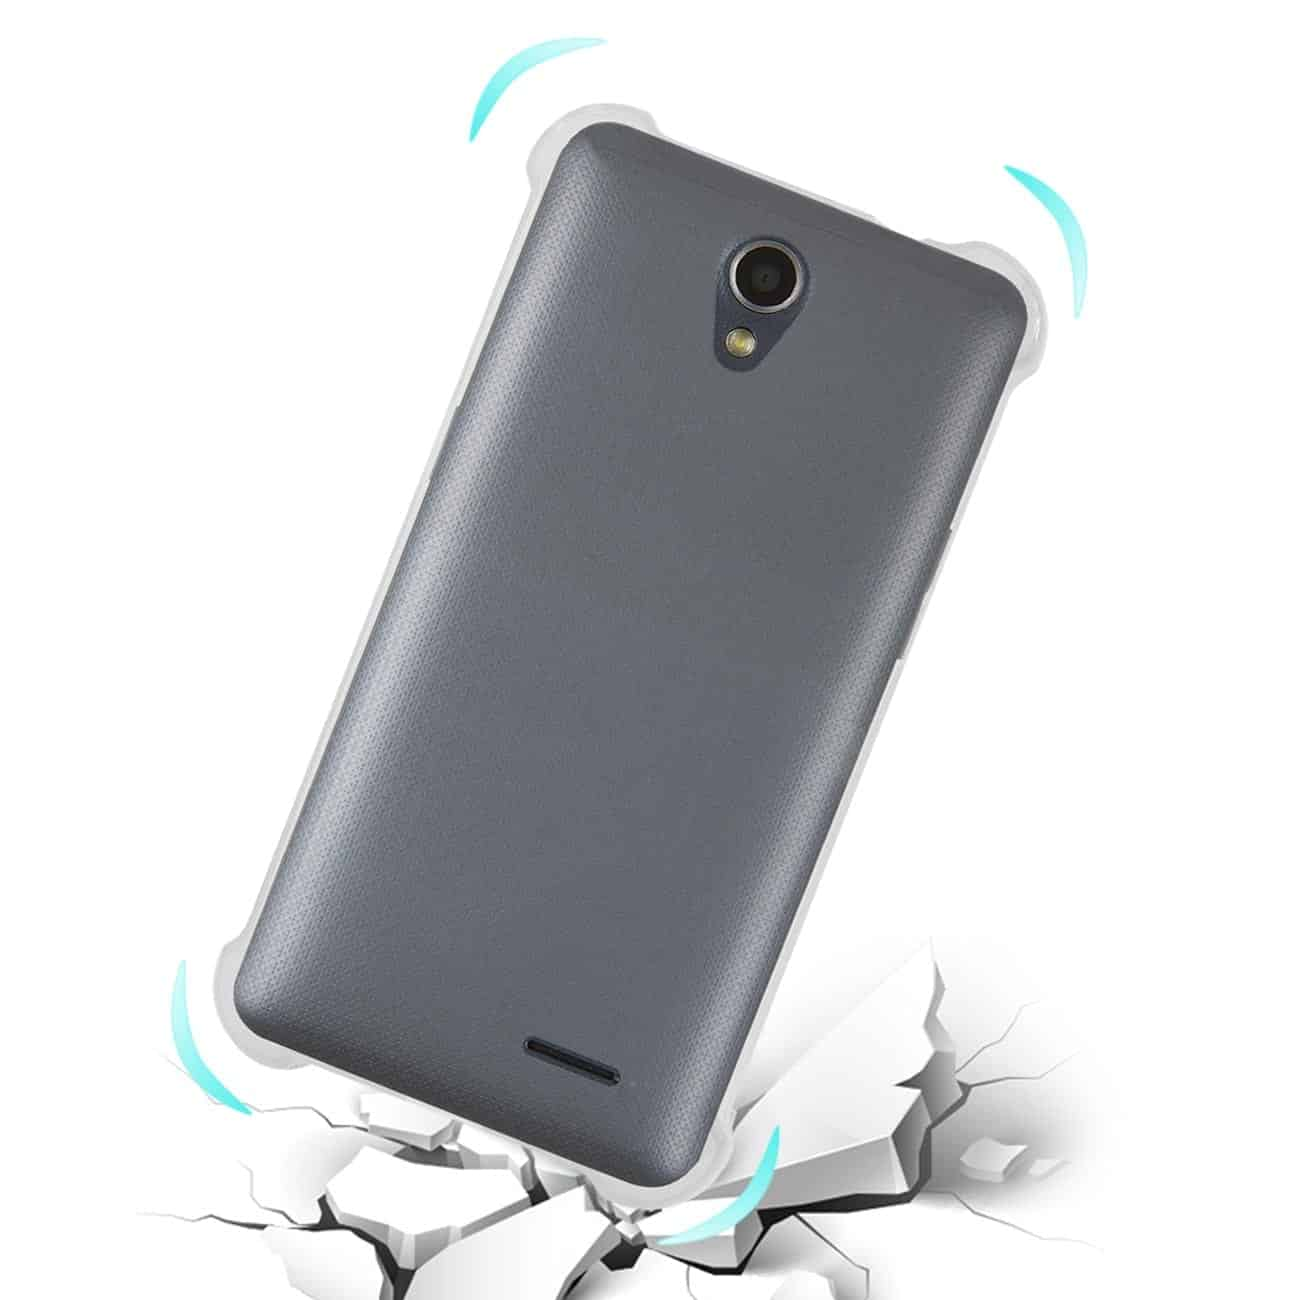 ZTE MAVEN 2/ CHAPEL (Z831) CLEAR BUMPER CASE WITH AIR CUSHION PROTECTION IN CLEAR